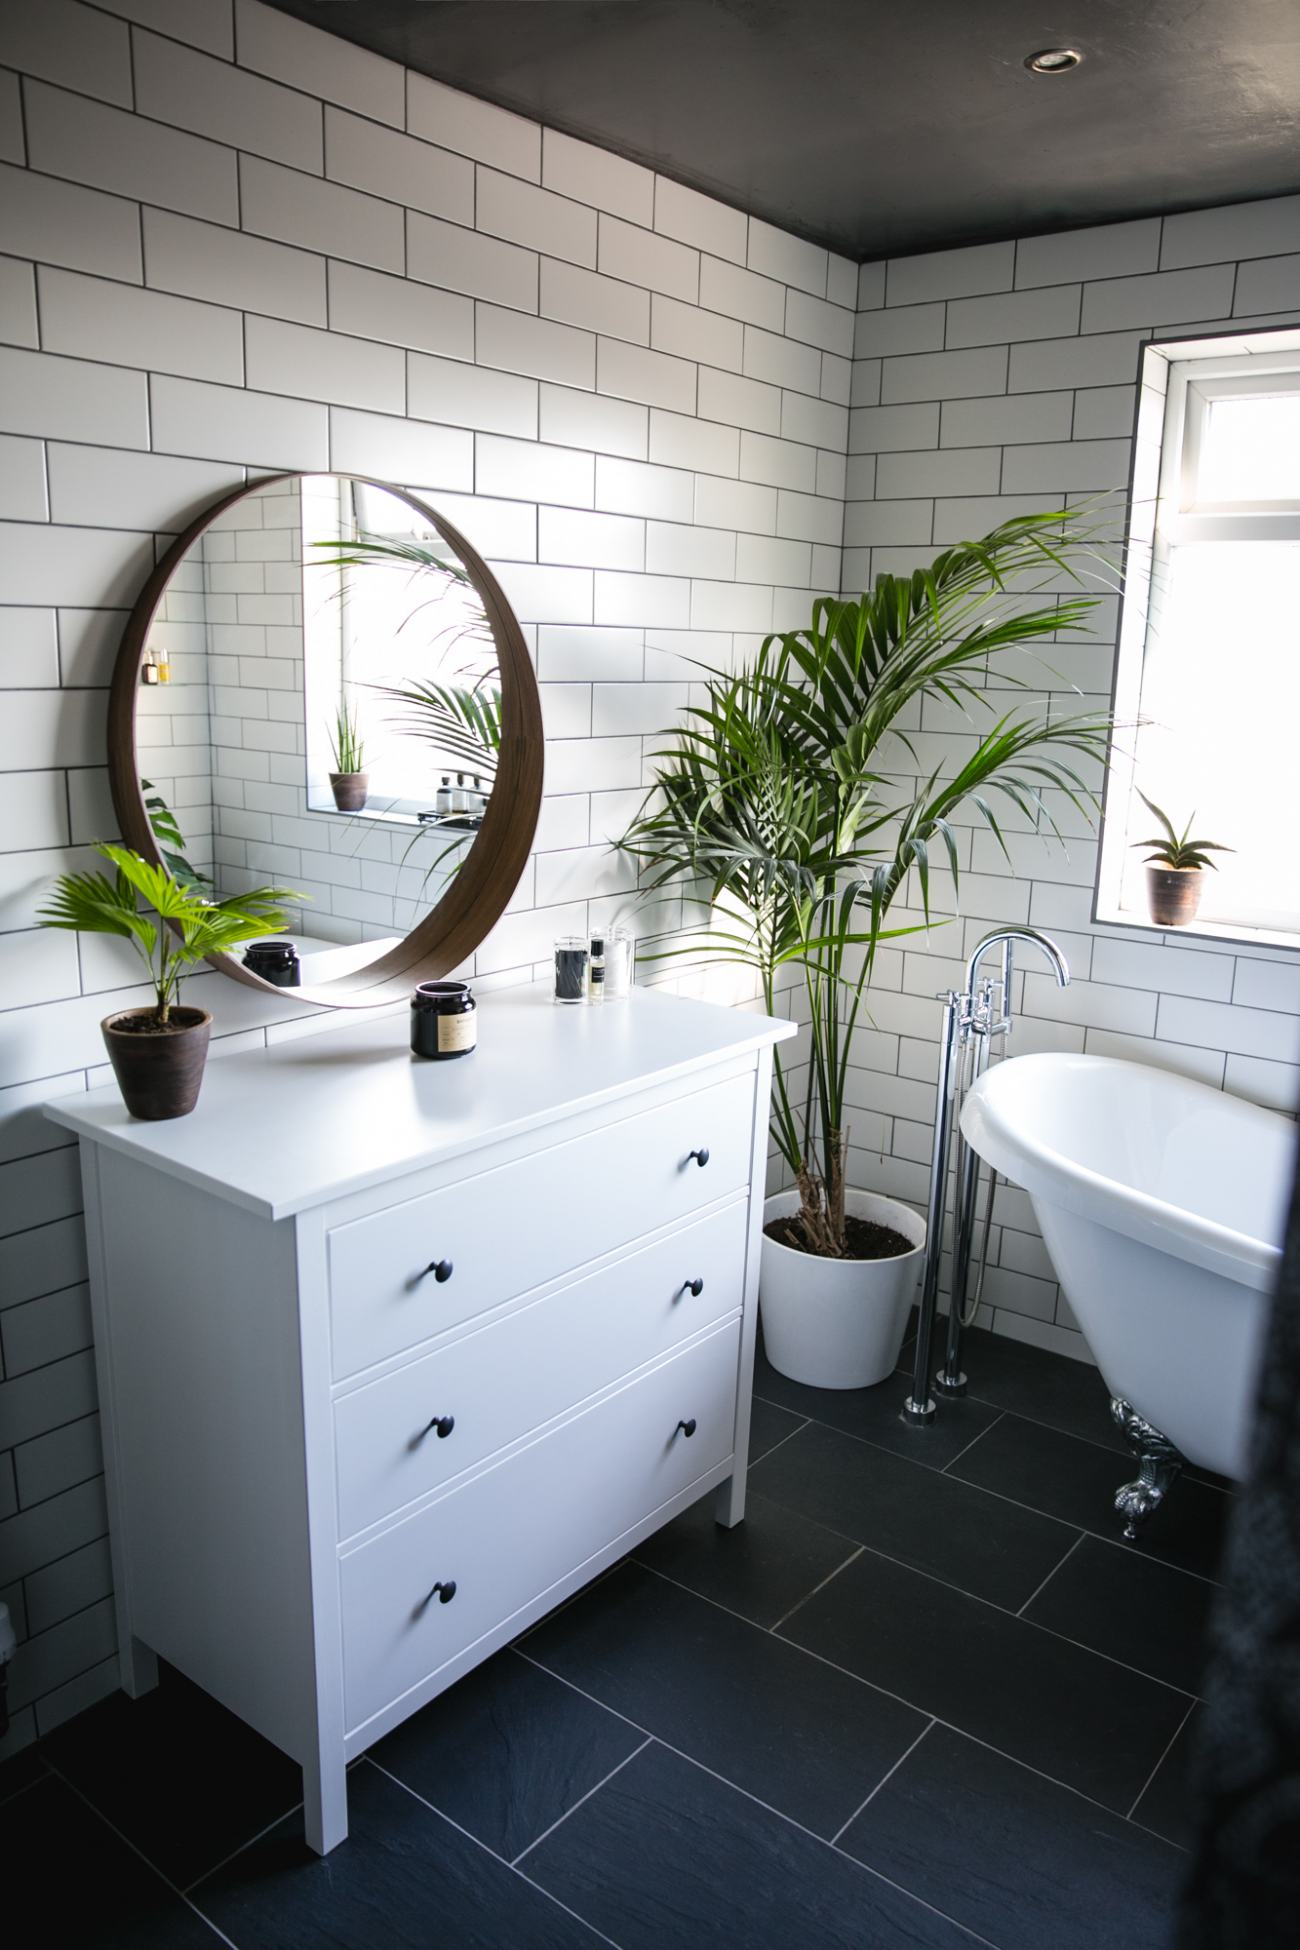 white tiles grey grout, roll top bath, palm plant, round wall mirror, slate floor, round mirror, bathroom design